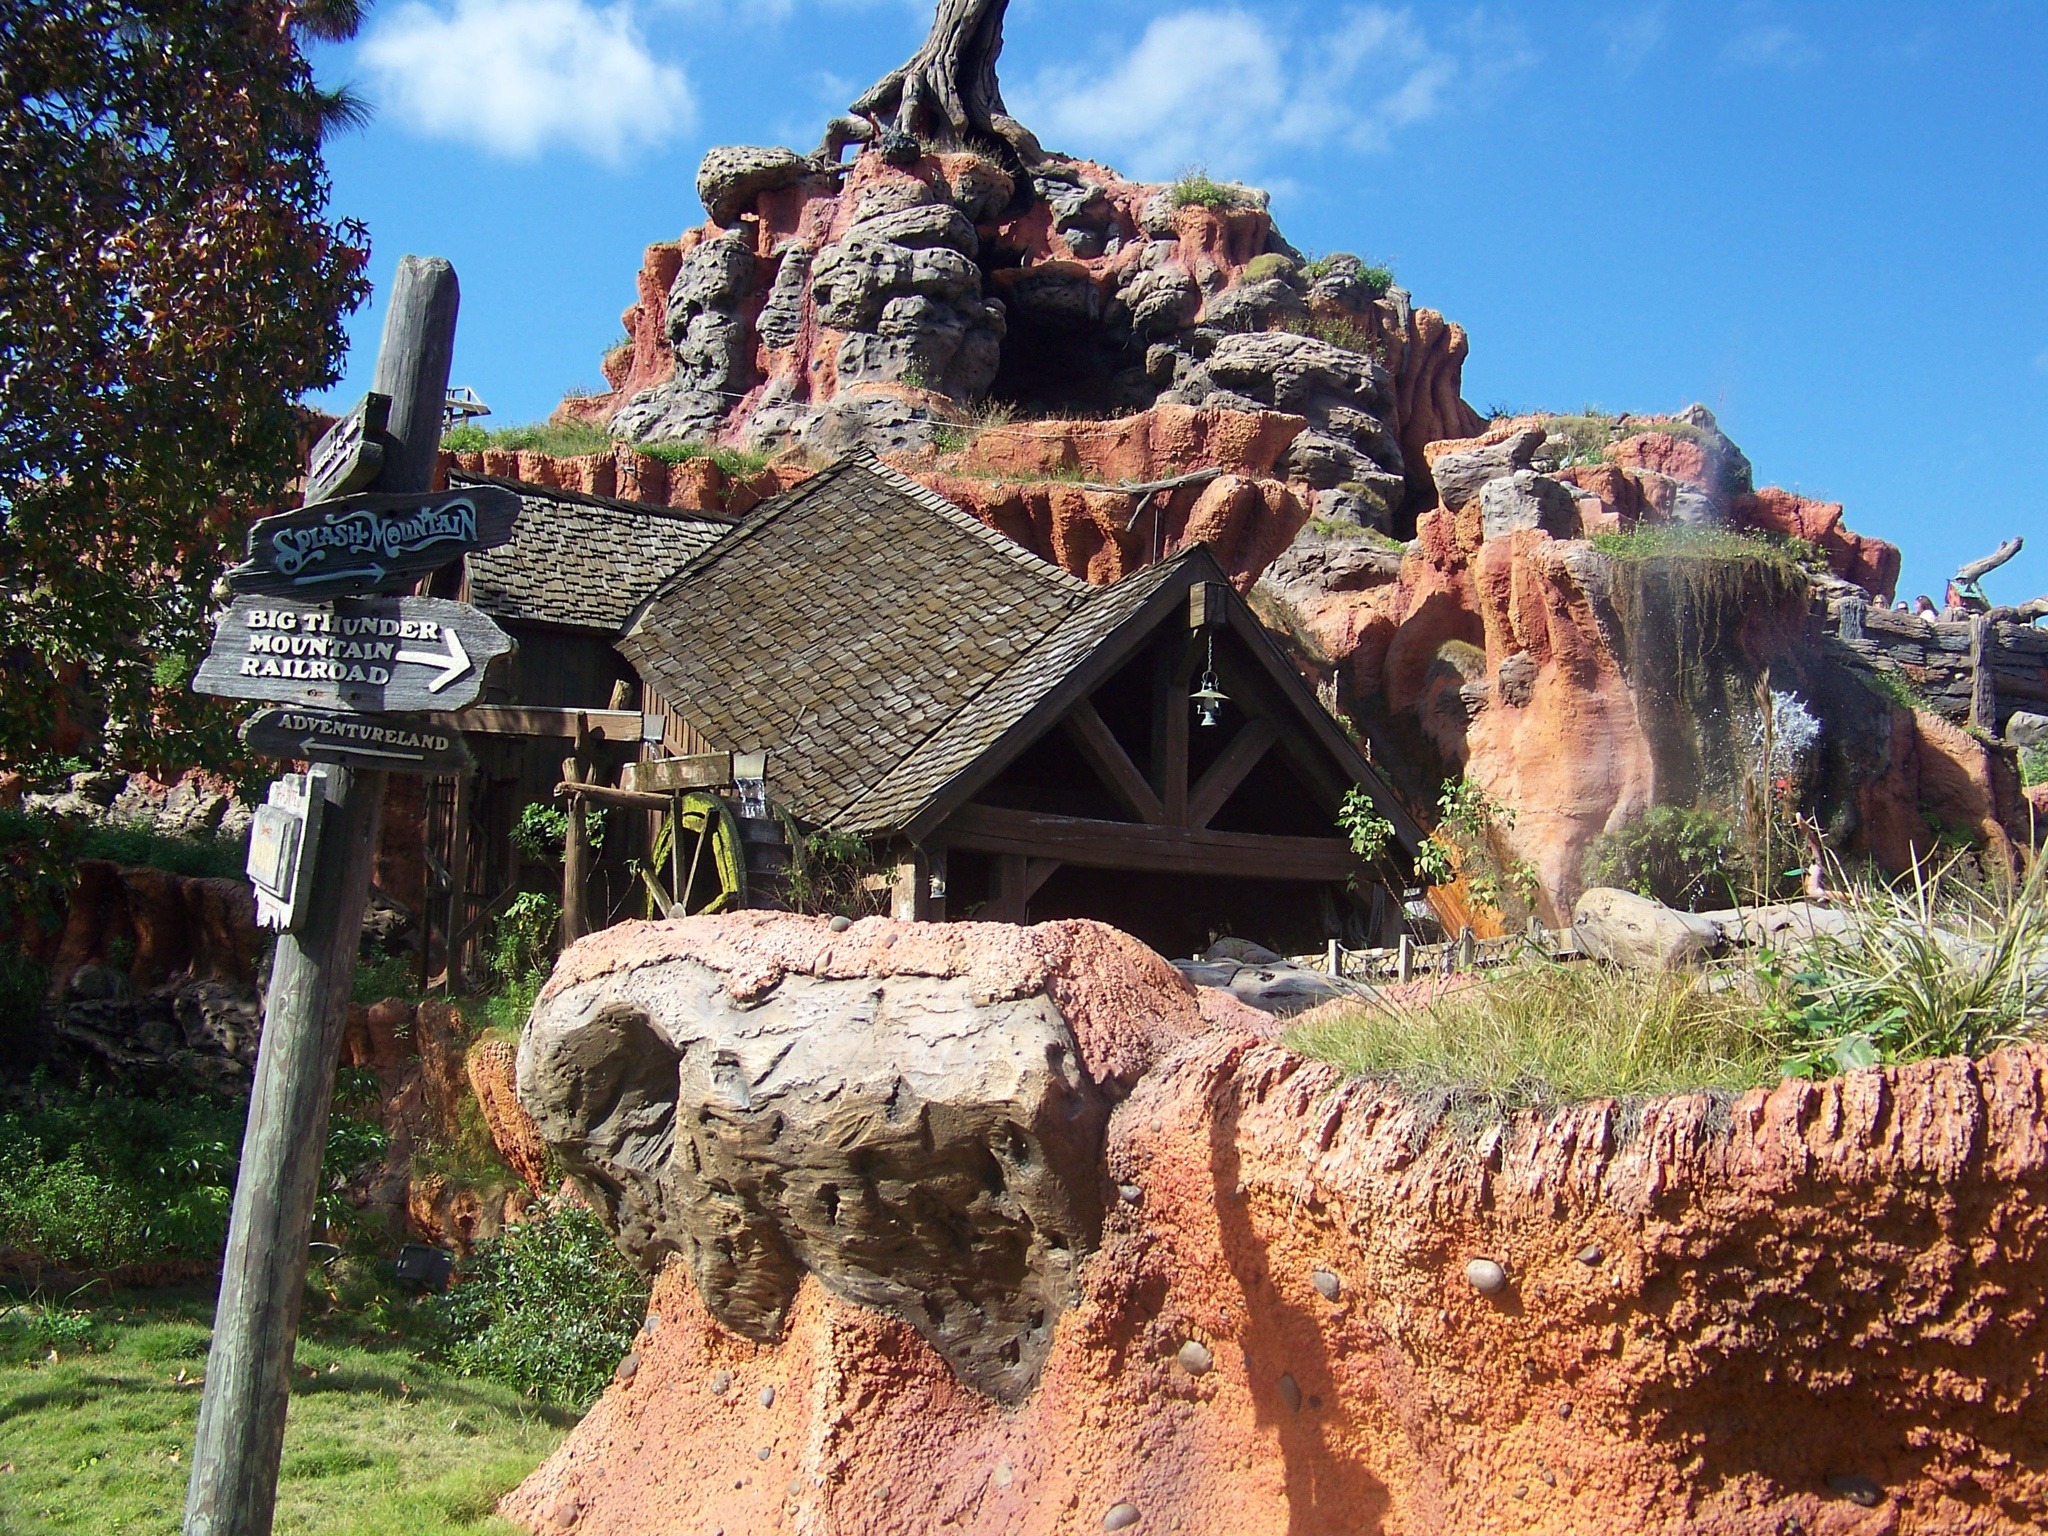 Thunder mountain railroad by Julie